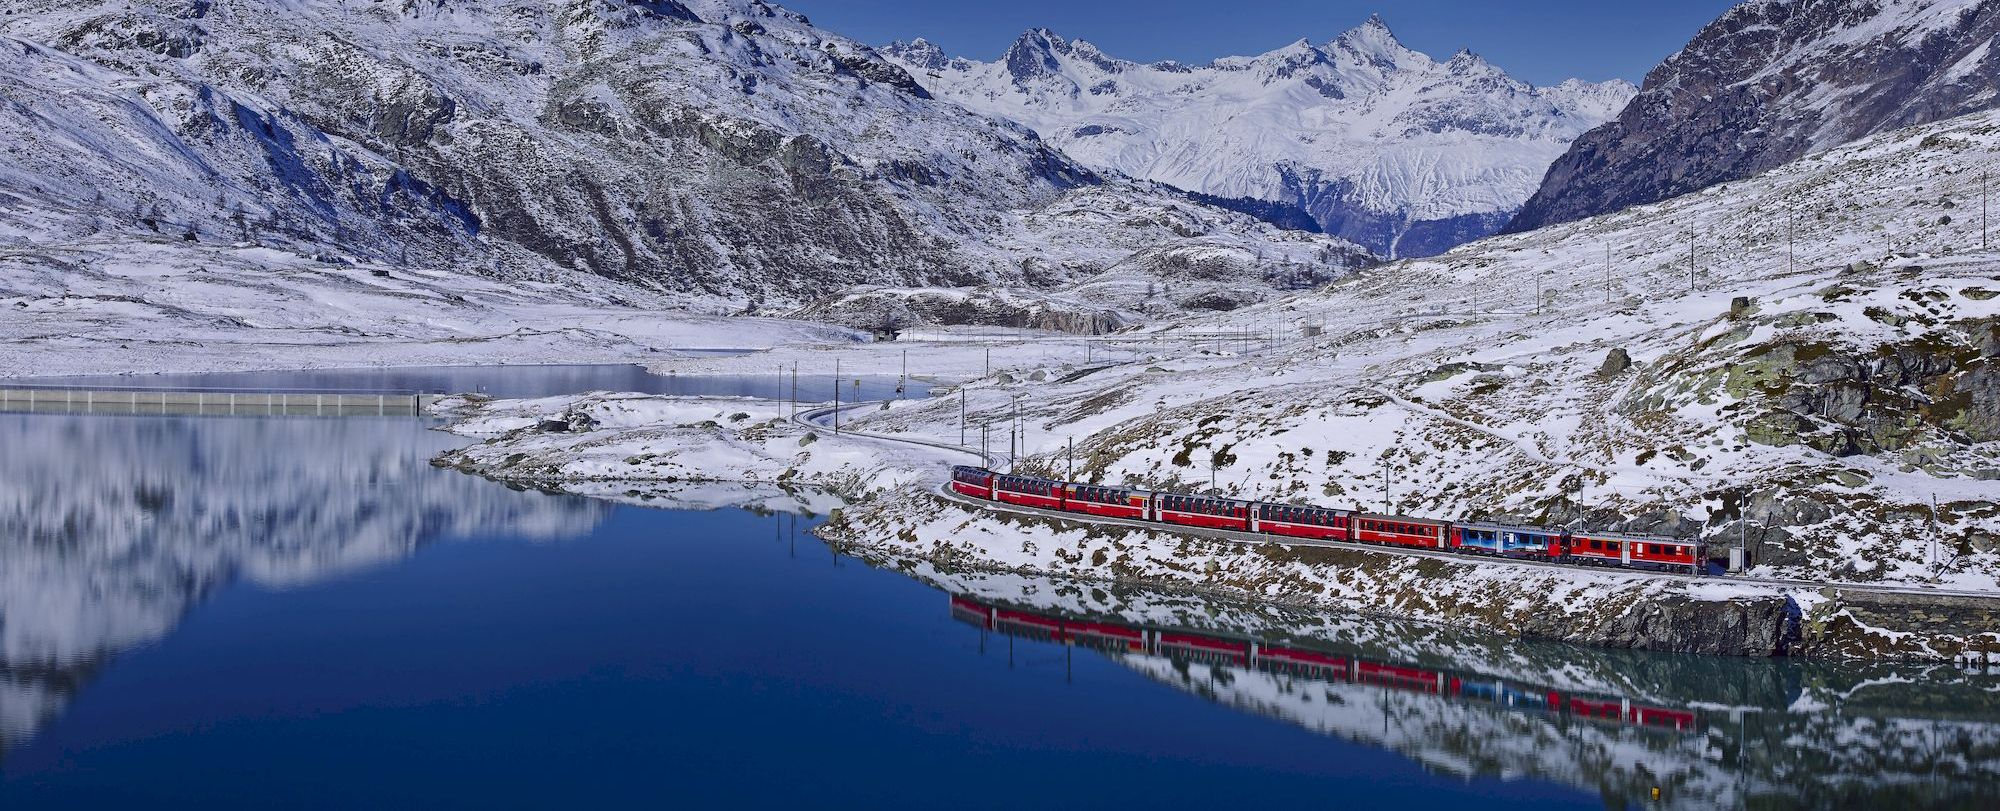 BERNINA - Winterzauber am Berninapass